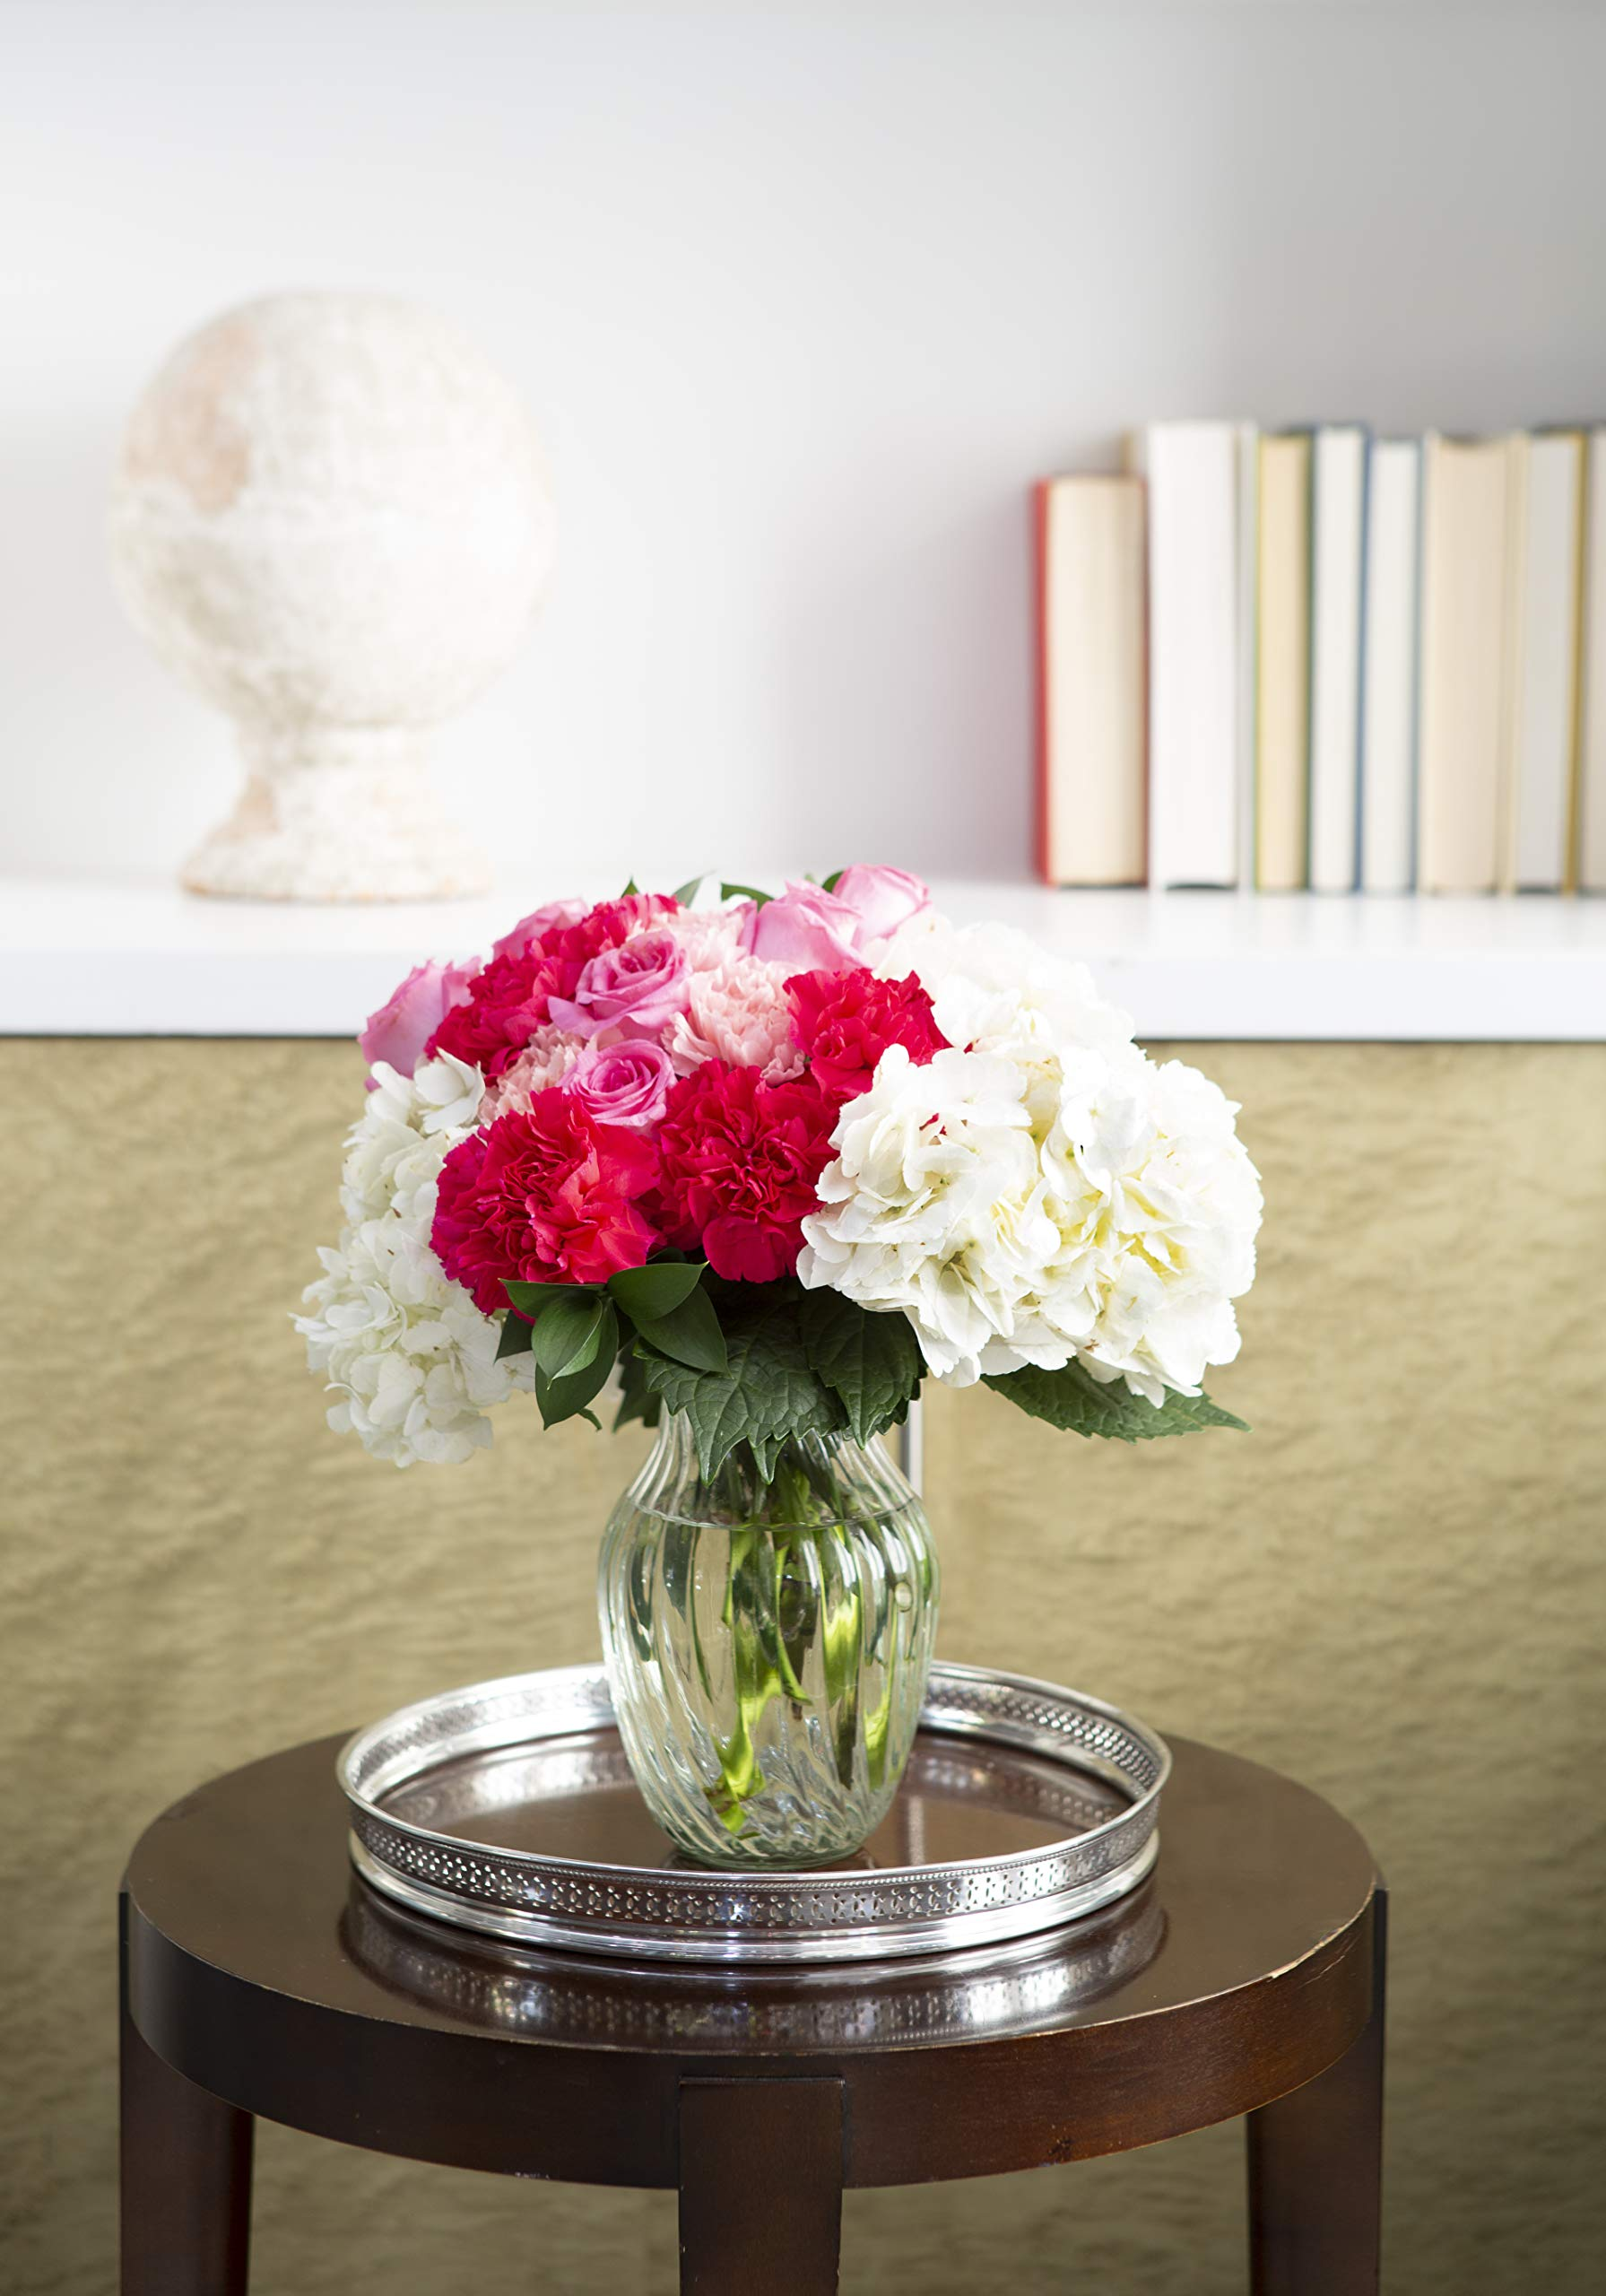 KaBloom Let Them Eat Cake Bouquet of Pink Roses and White Hydrangeas with Vase by KaBloom (Image #6)